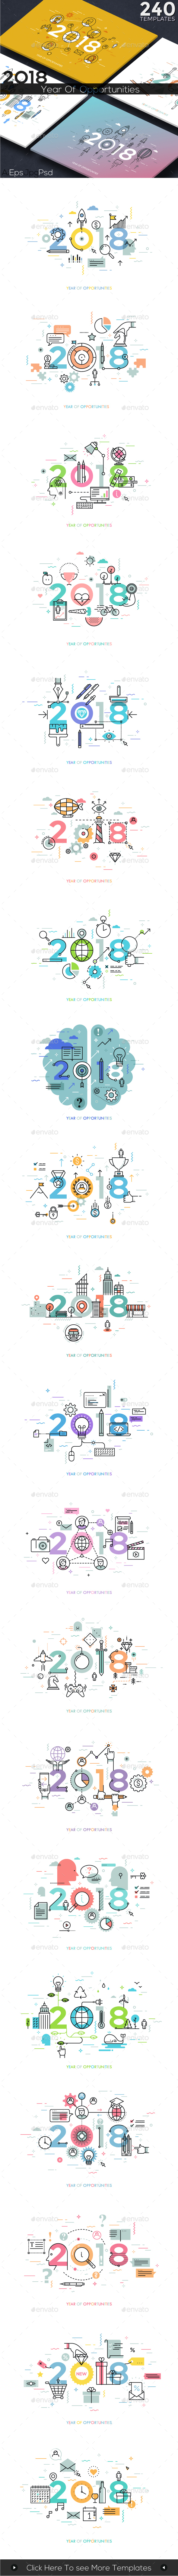 GraphicRiver 2018 Year Of Opportunities 20628434